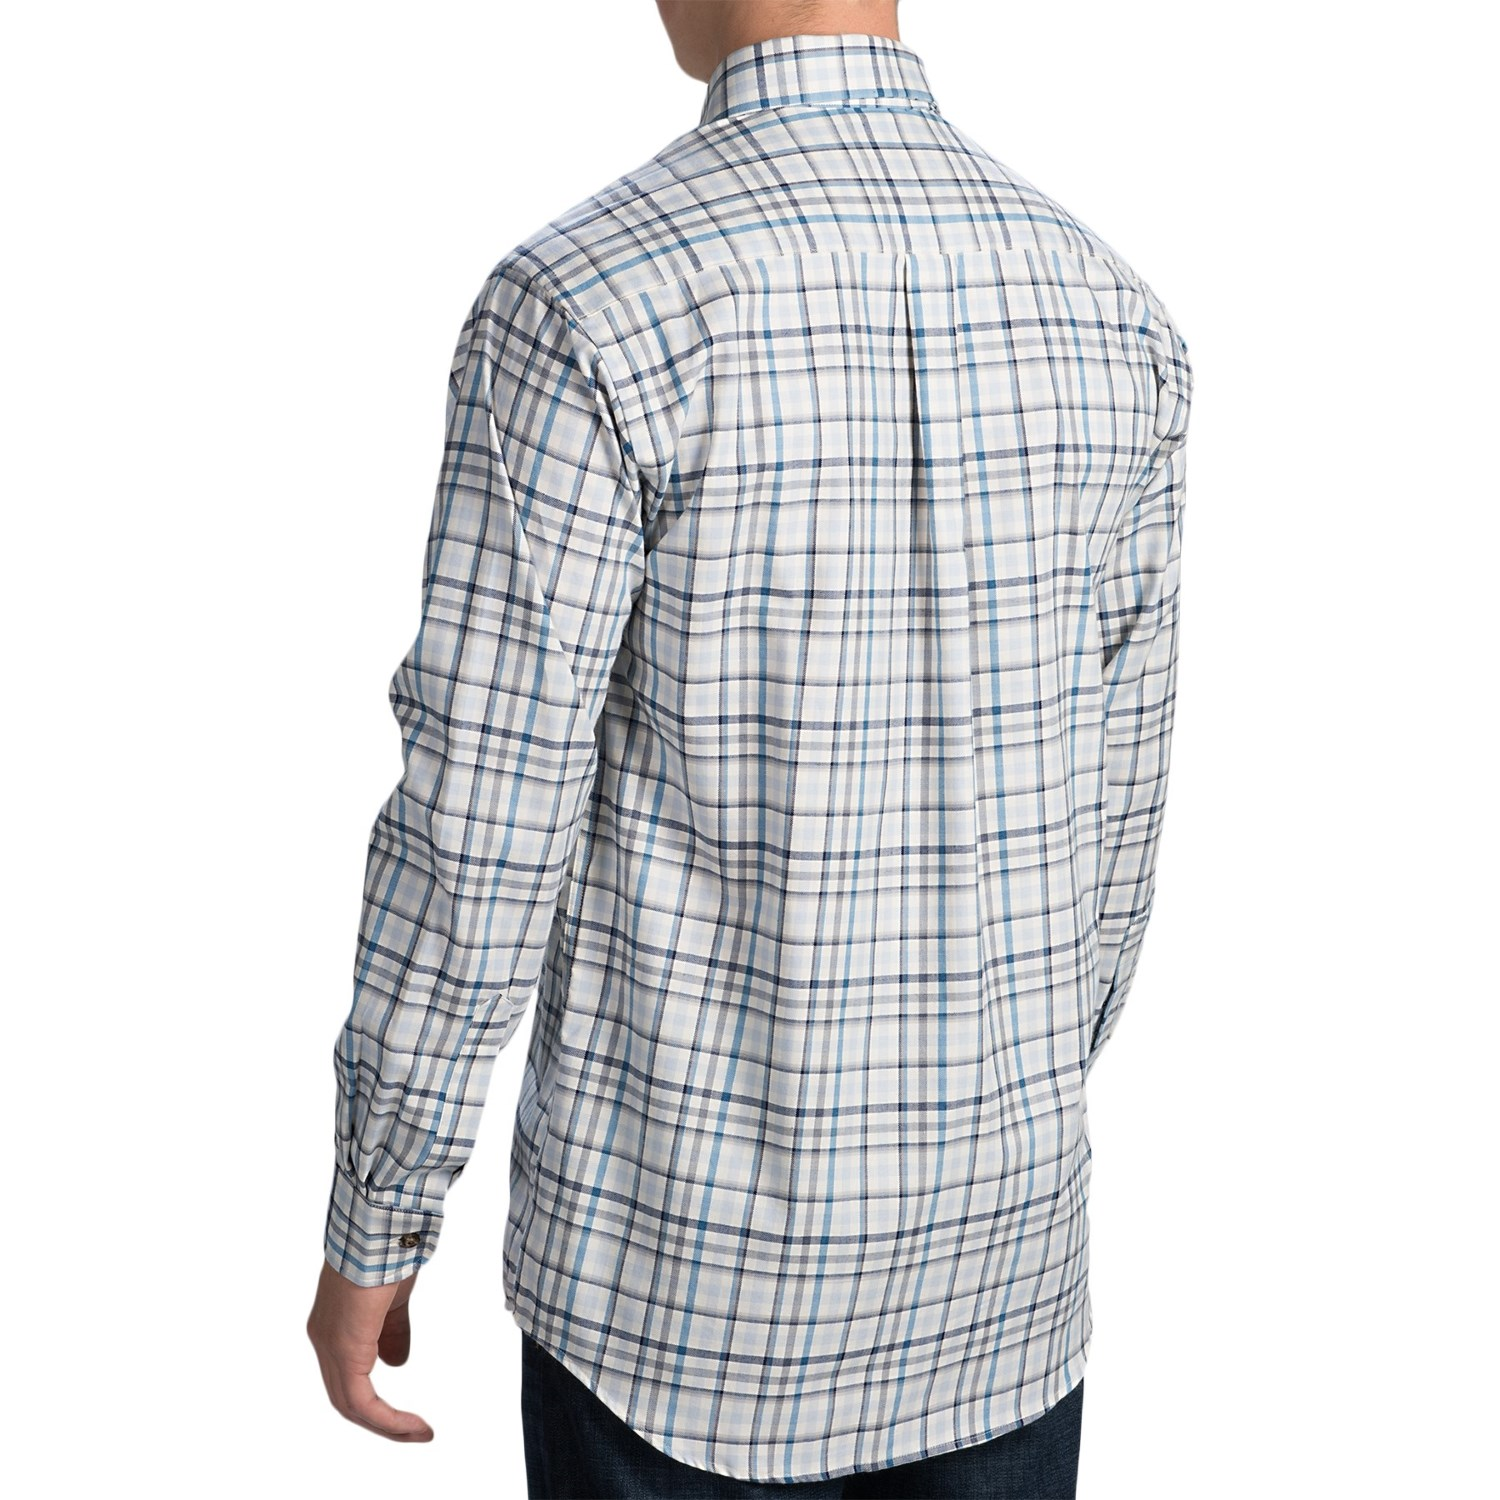 English Wool Sport Shirts For Men 35